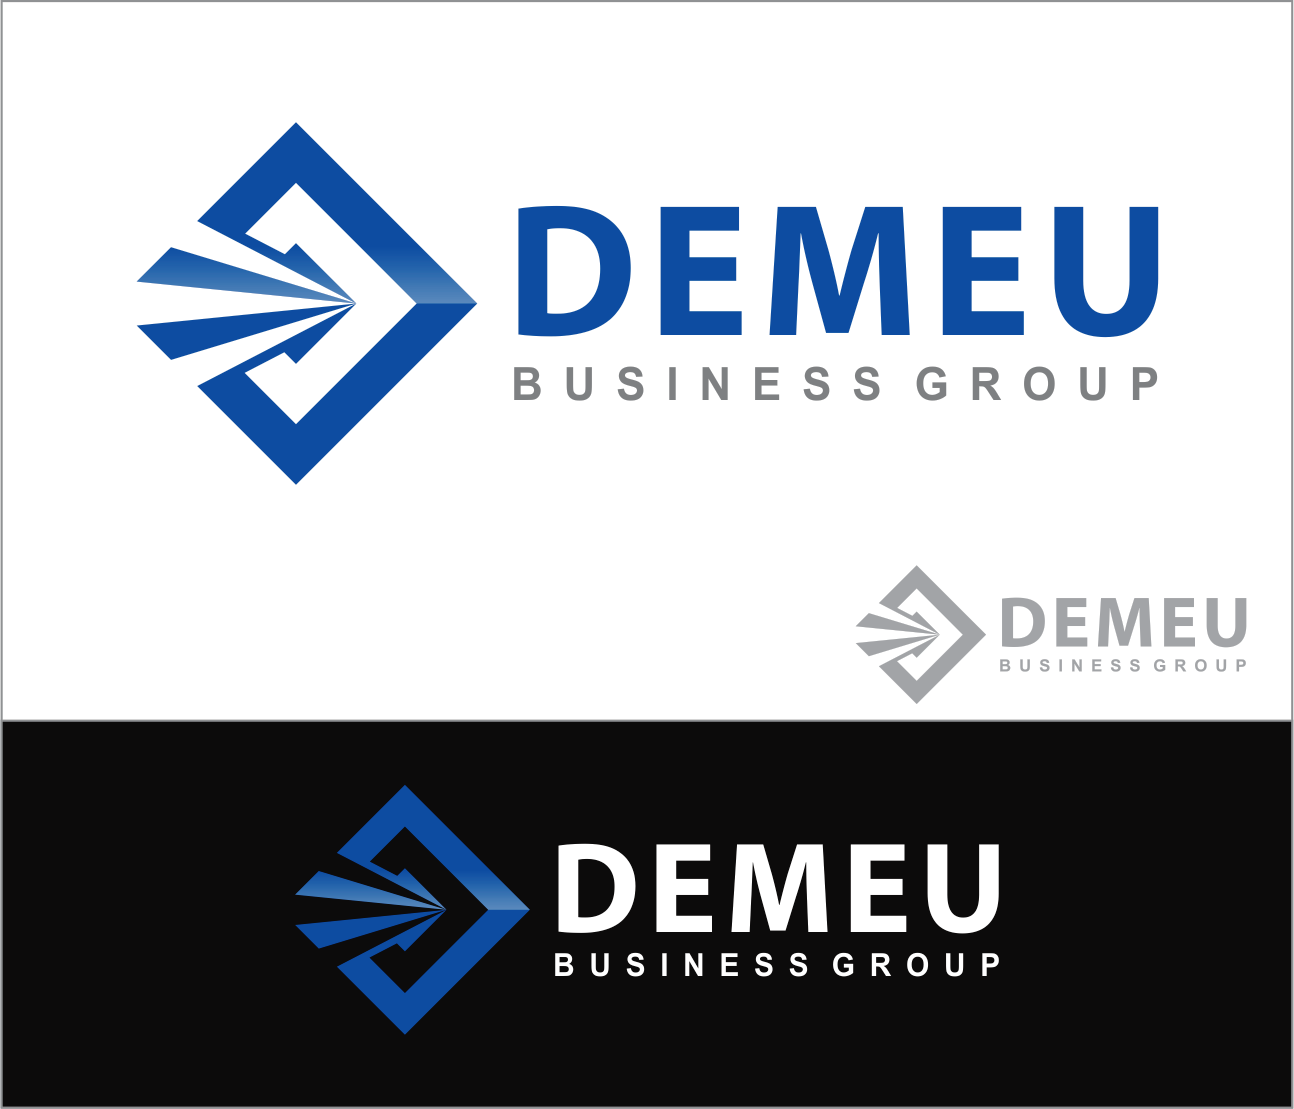 Logo Design by Armada Jamaluddin - Entry No. 163 in the Logo Design Contest Captivating Logo Design for DEMEU Business Group.